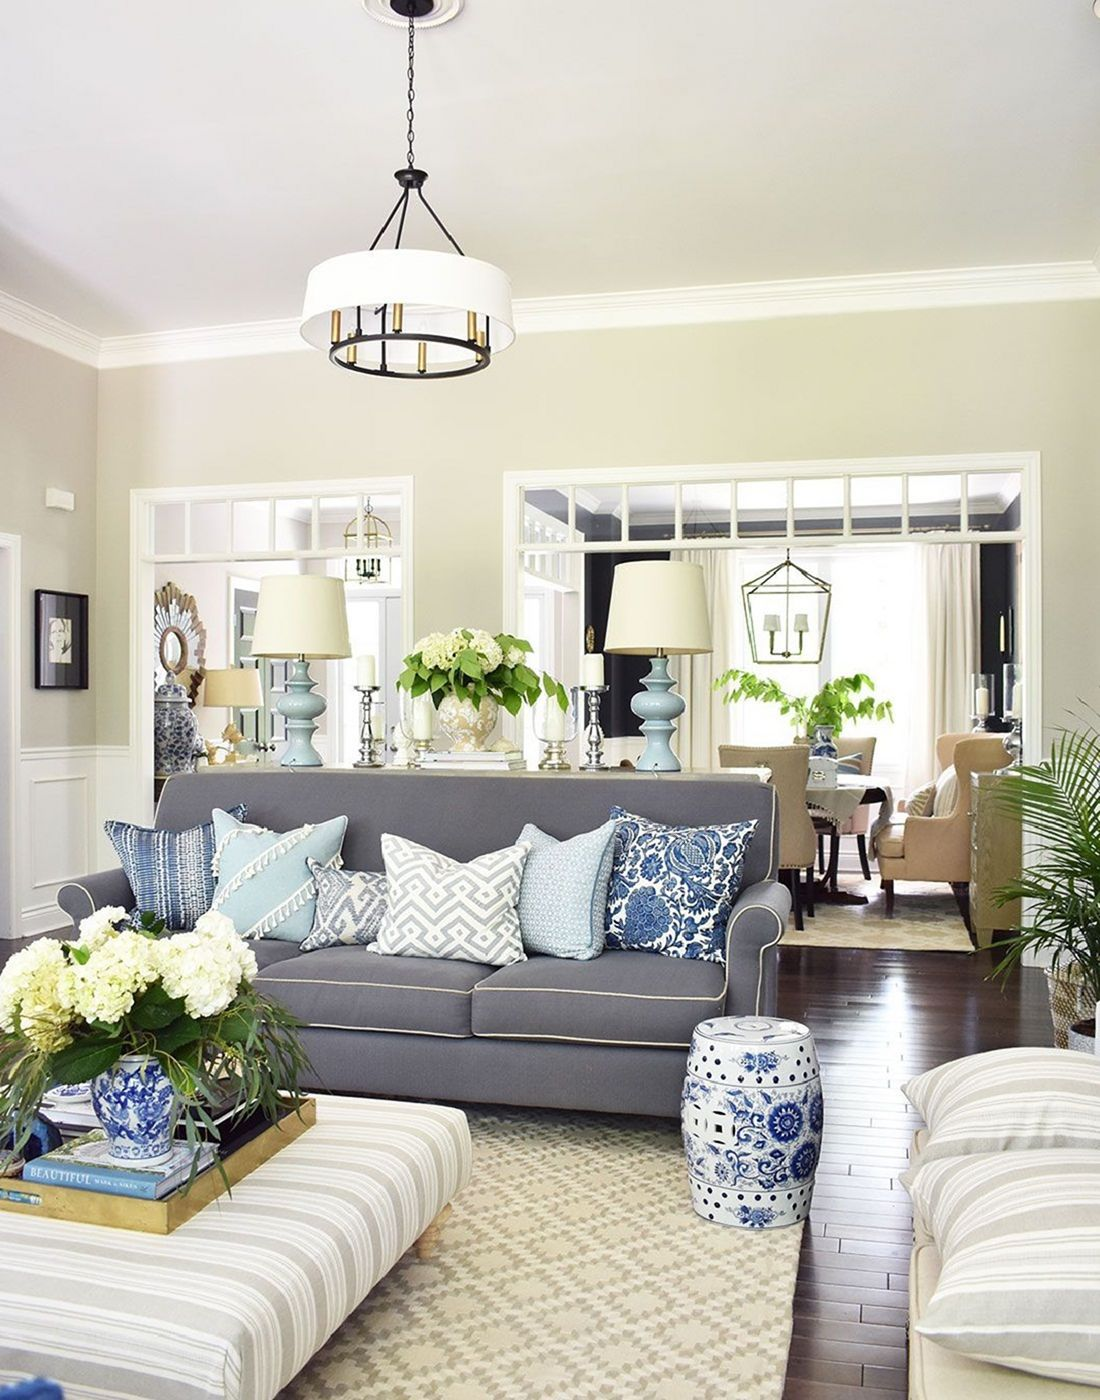 Choosing A Living Room Decor Theme: Helpful Tips That Can Be Followed To Choose A Living Room